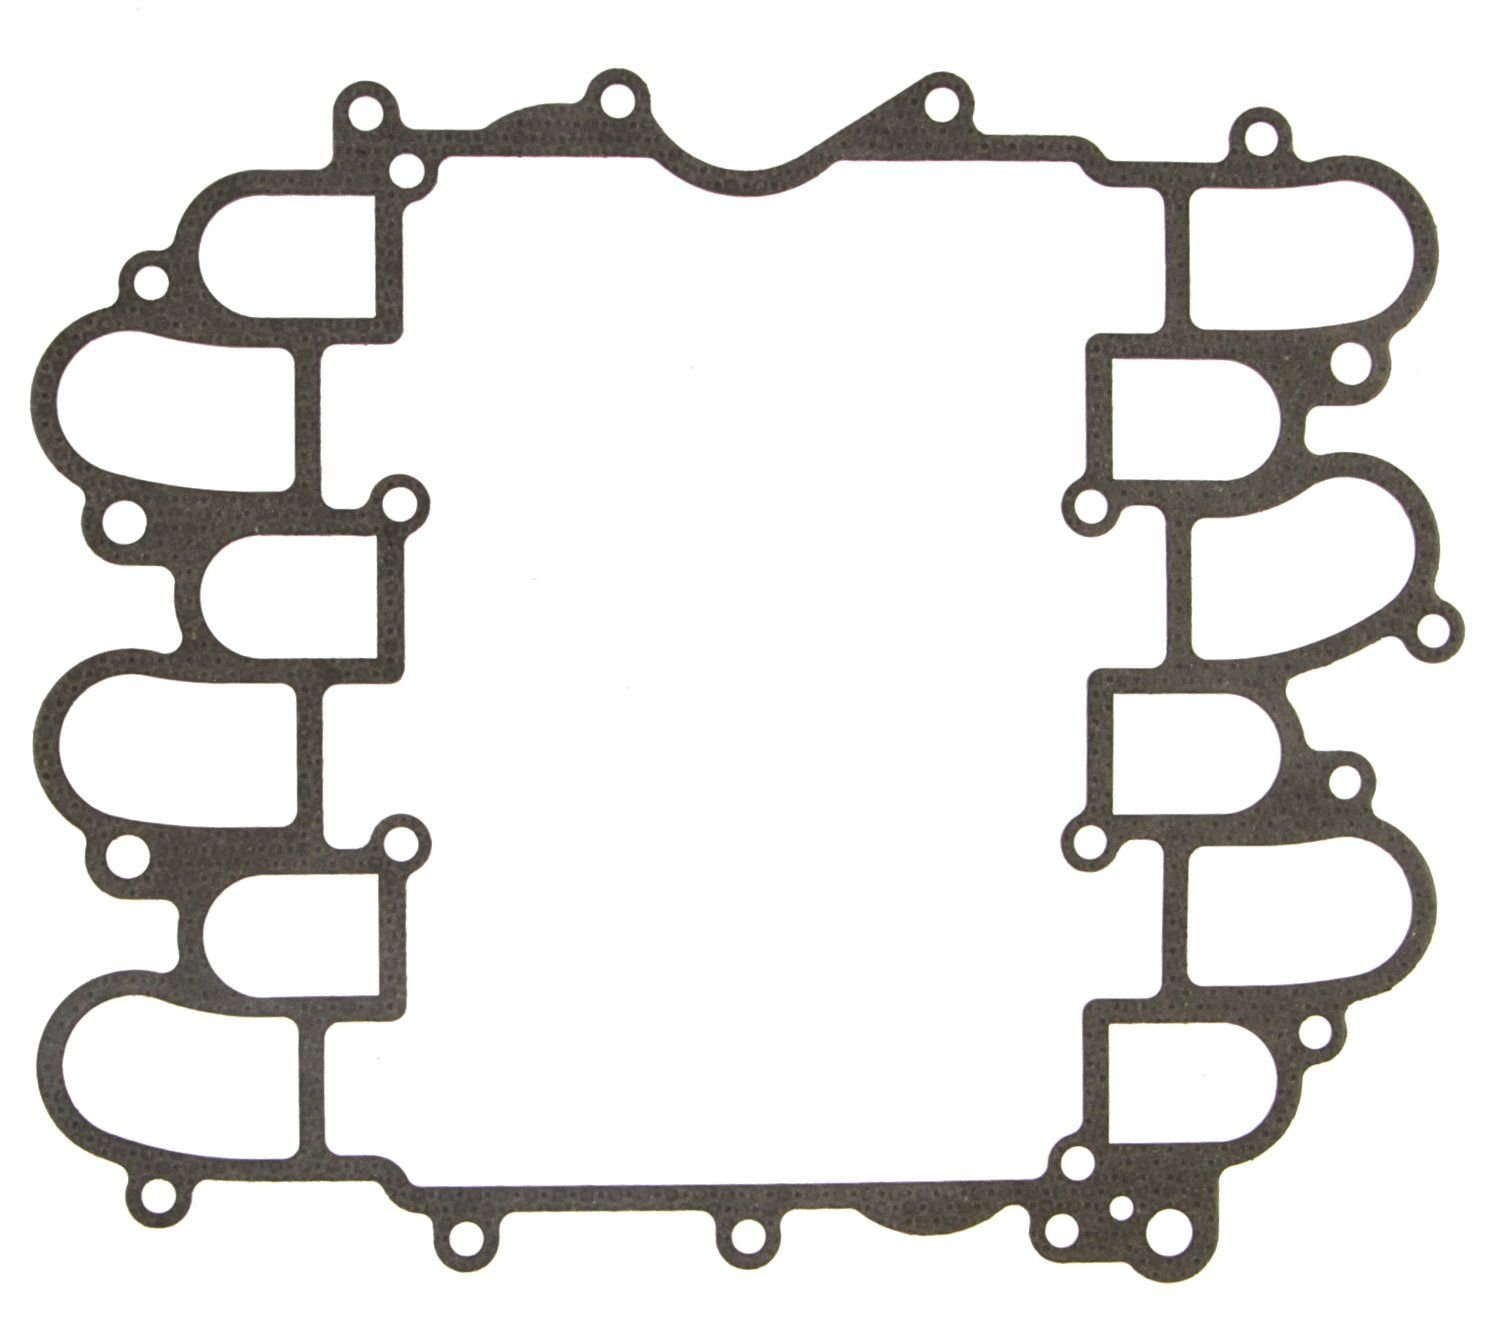 1992 Mercedes Benz 190 E Head Gasket: 1989 Audi 100 Intake Plenum Gasket Manual